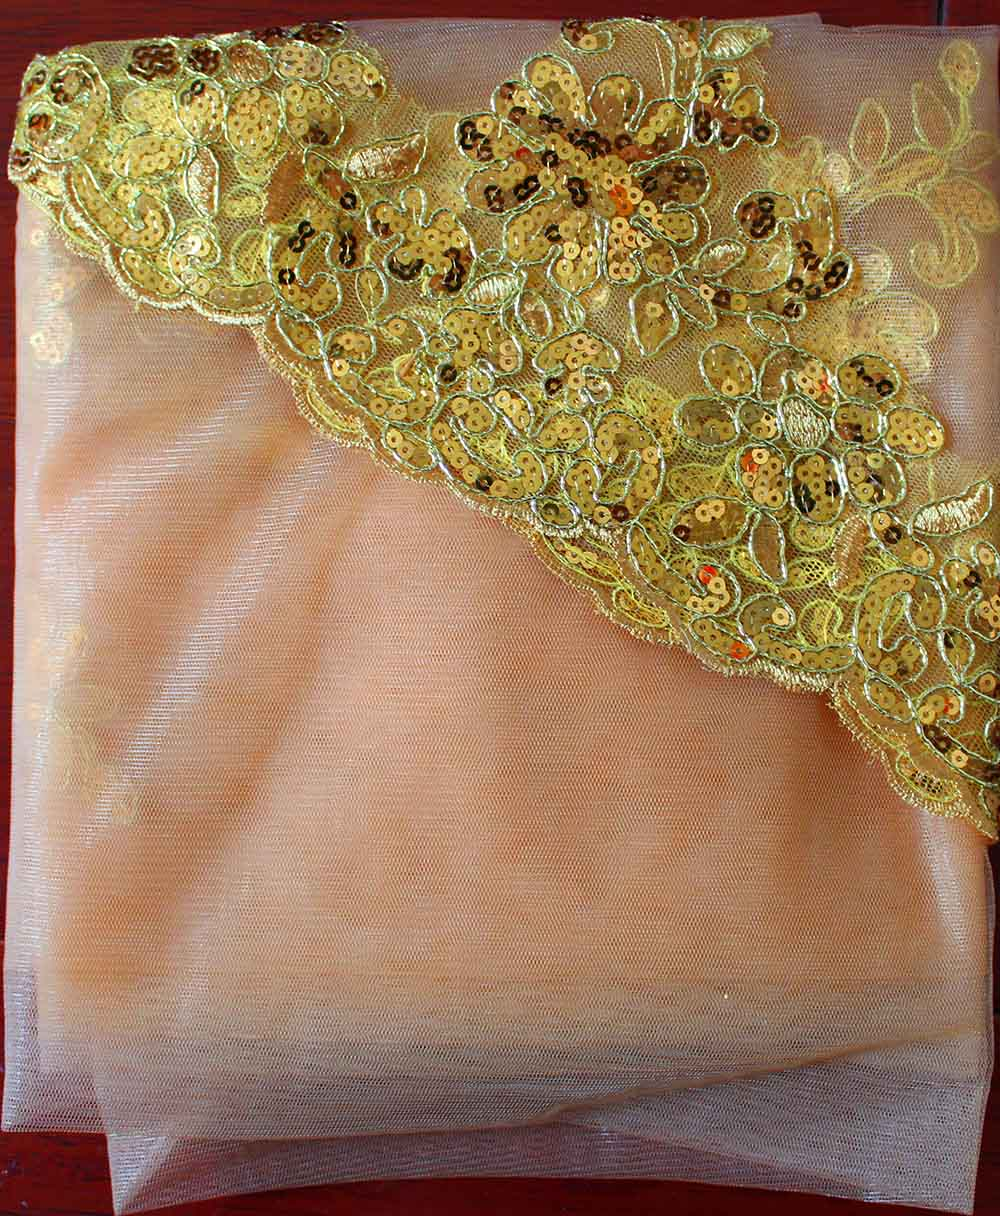 Bling Sequins Lace Gold Wedding Veil One Layer Short Colorful Bridal Veil with Comb Voile Mariage 2019 Wedding Accessories